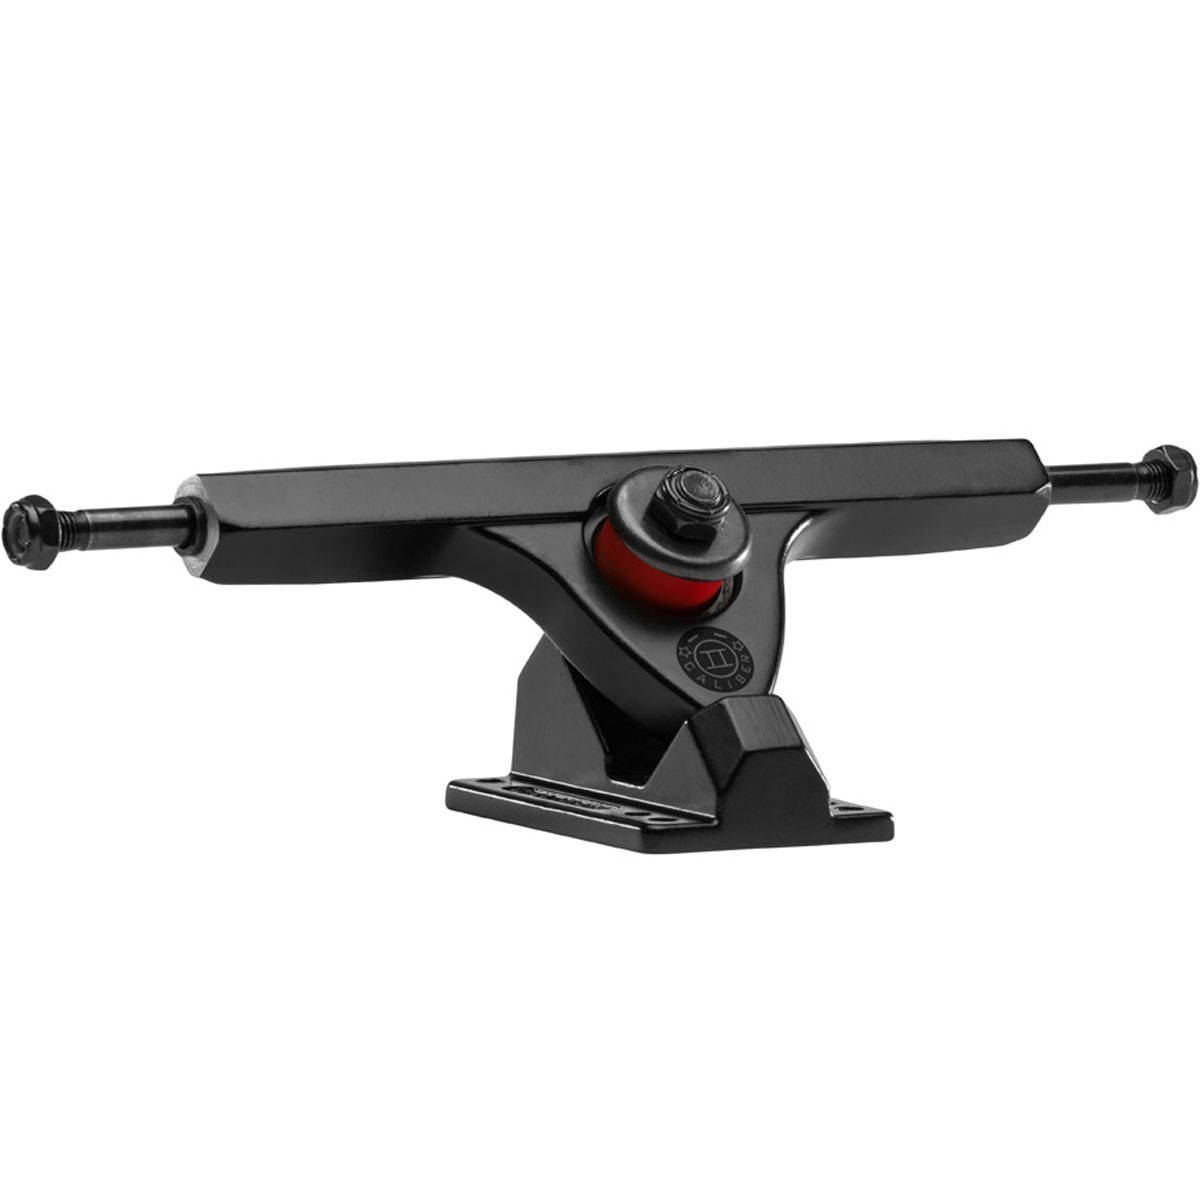 Caliber II Longboard Trucks - Black / Black 44 Degree